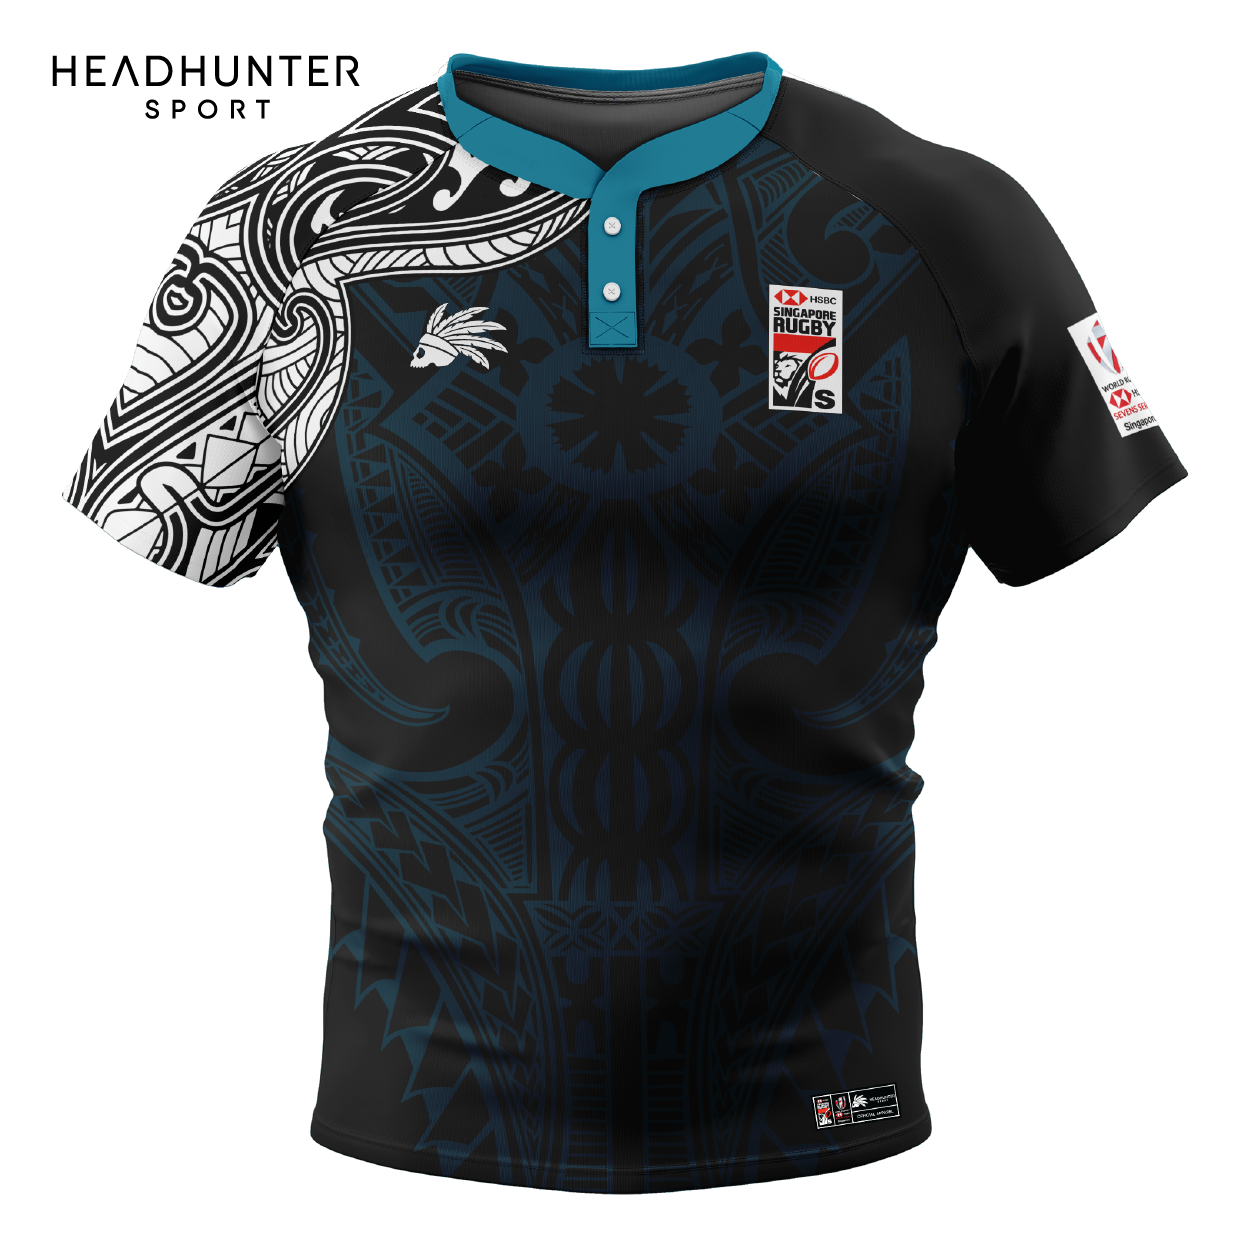 HSBC RUGBY 7S SERIES SINGAPORE 2019 MERCHANDISE FIJI AWAY JERSEY